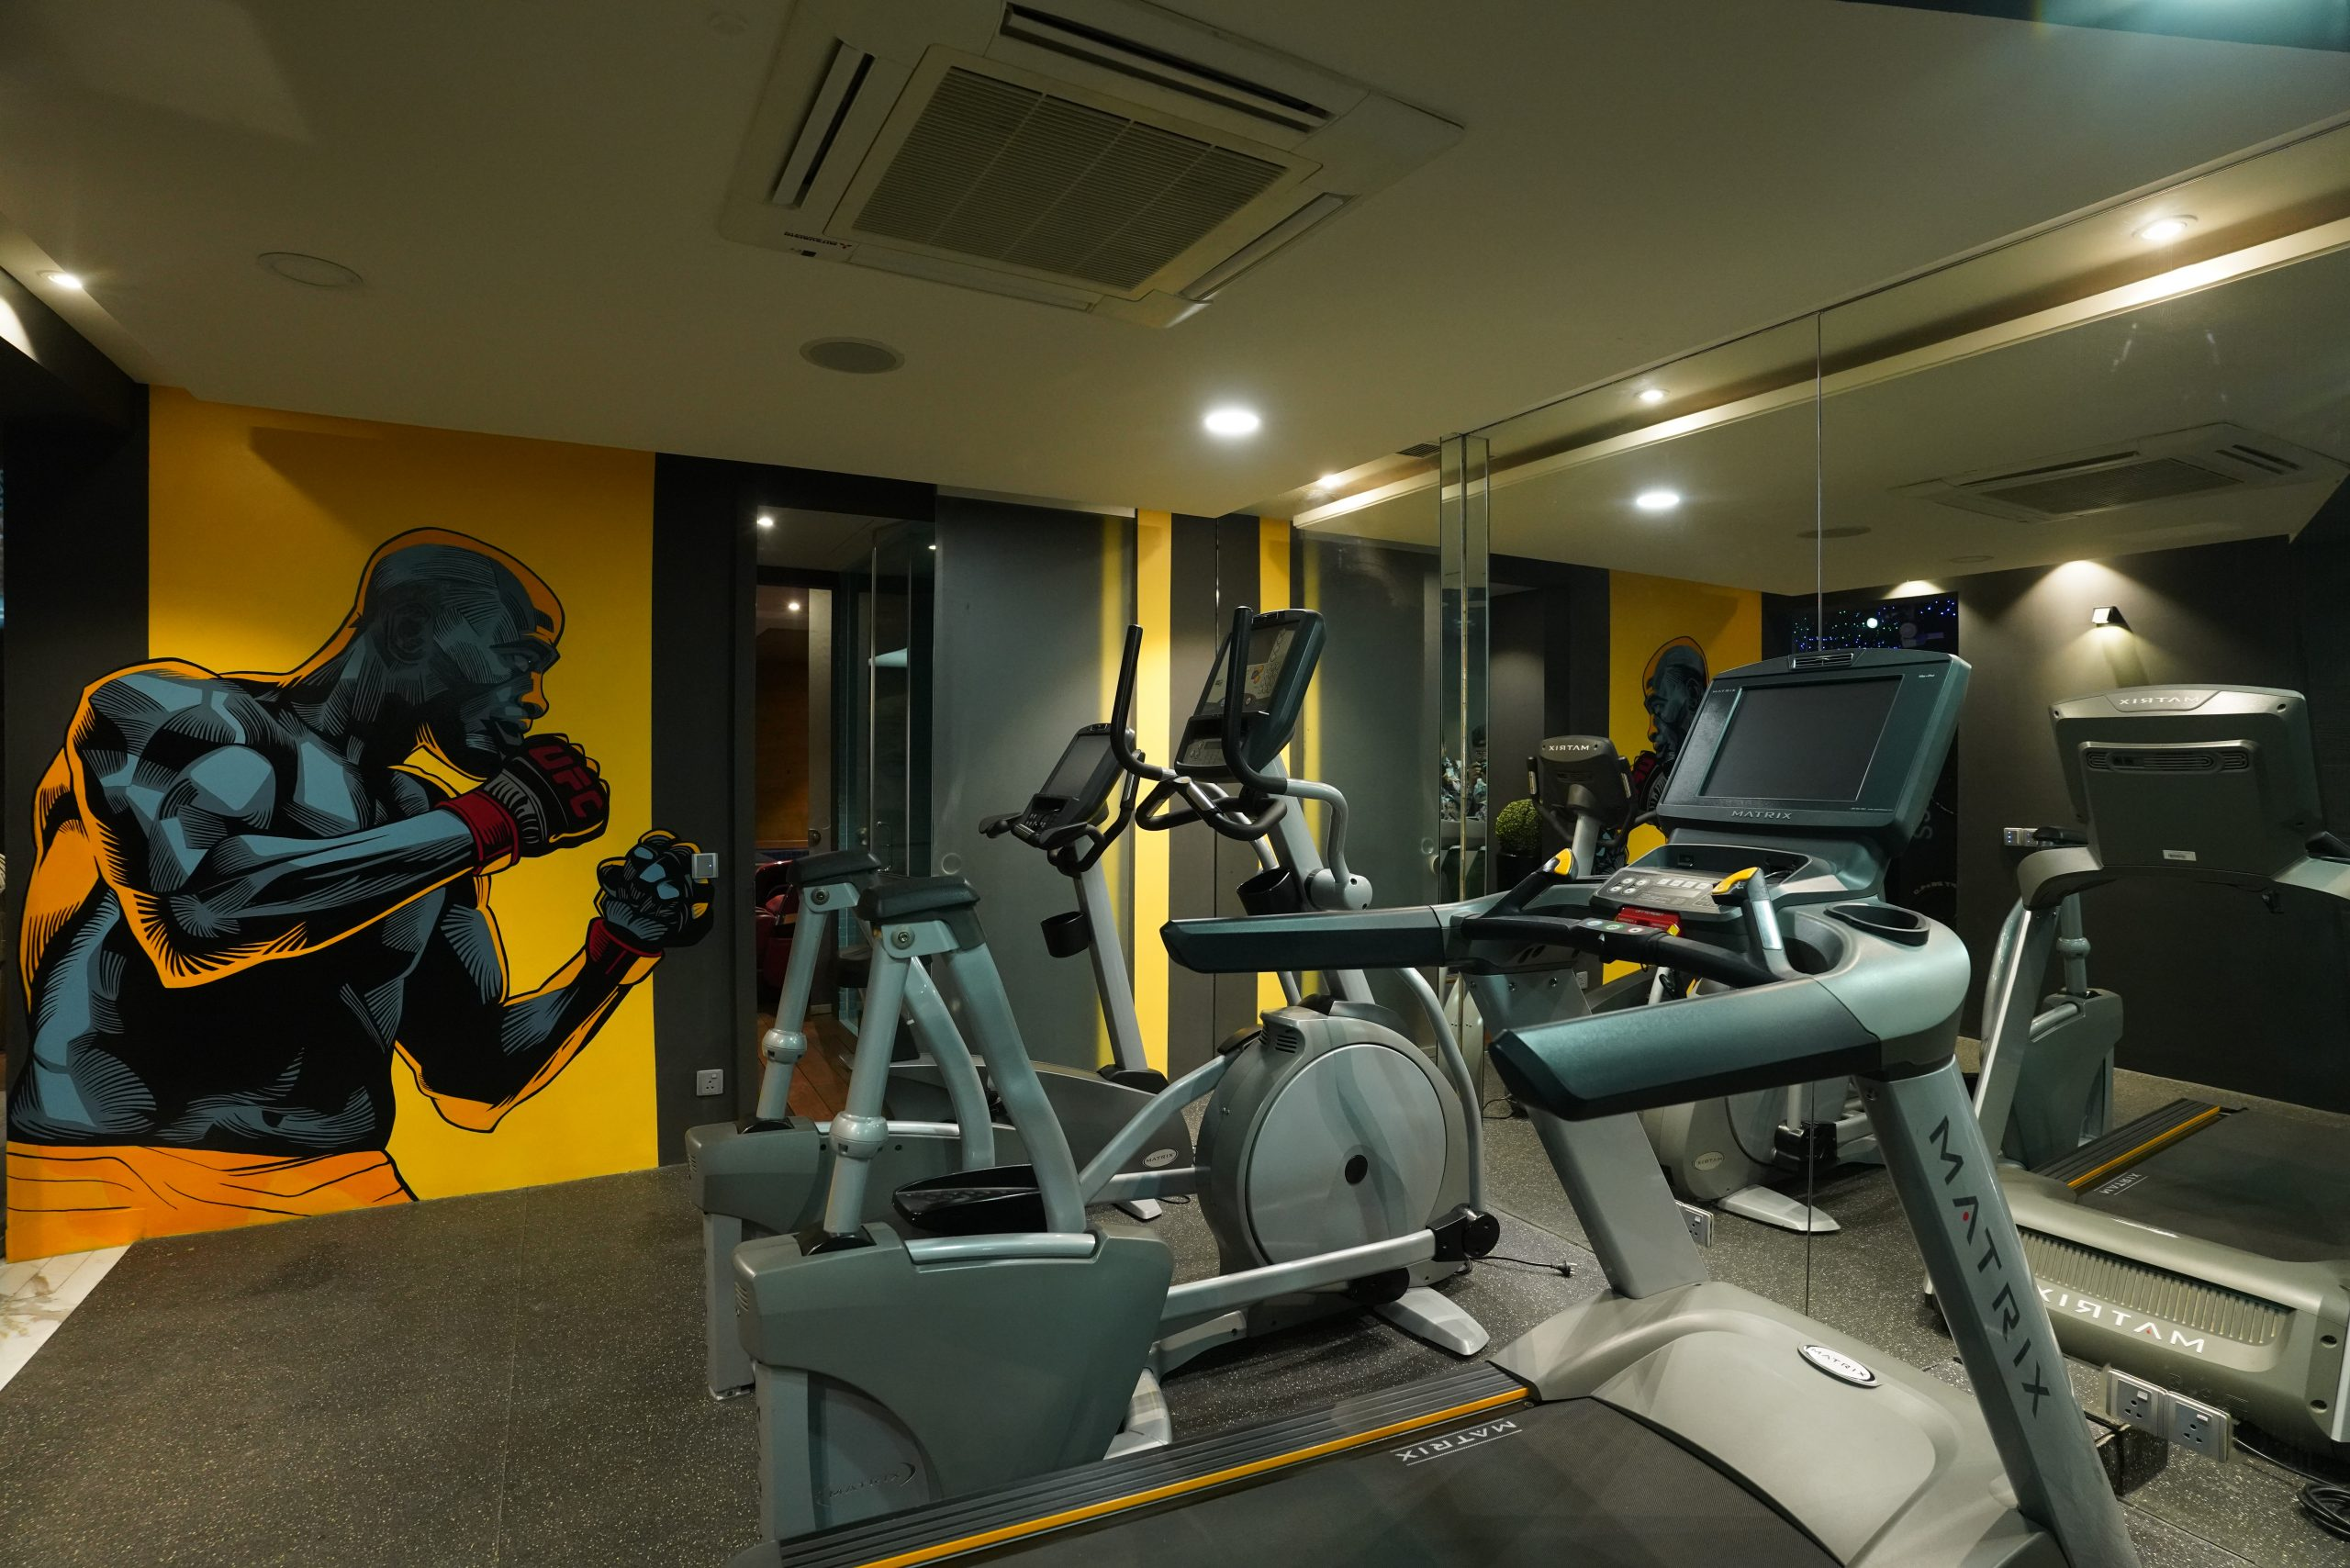 Interior of a gym